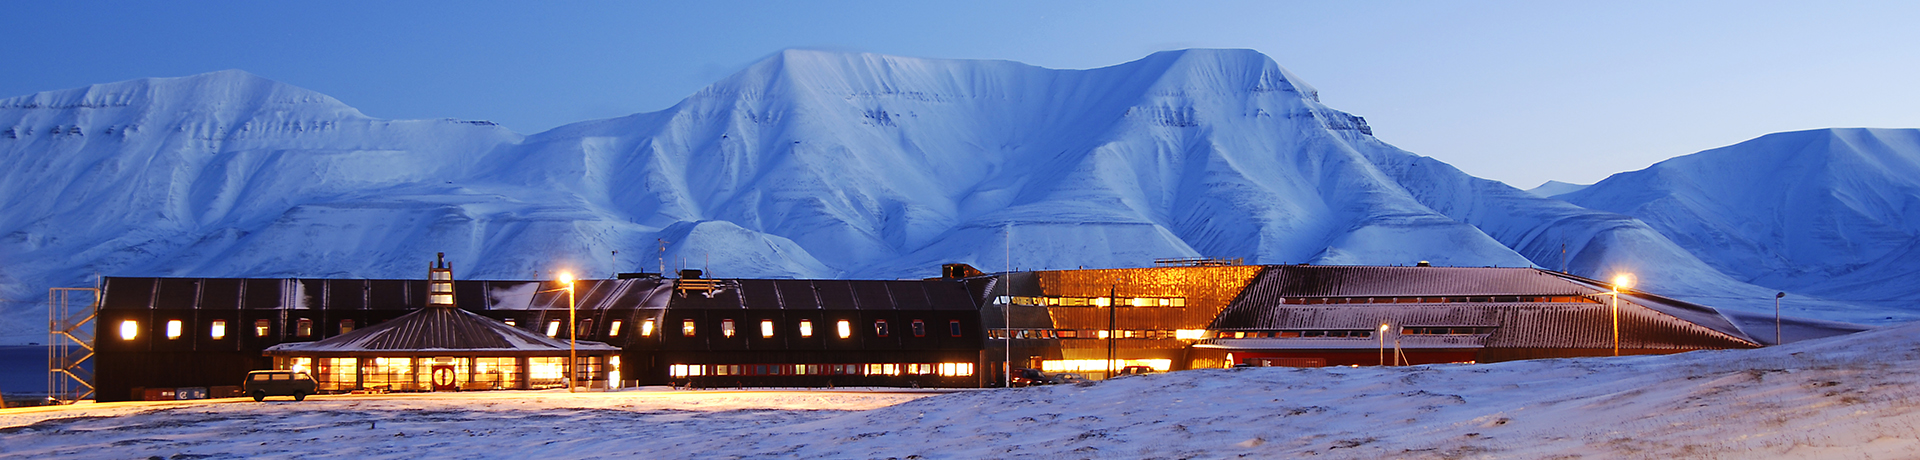 UNIS/Svalbard Science Centre, Longyearbyen.